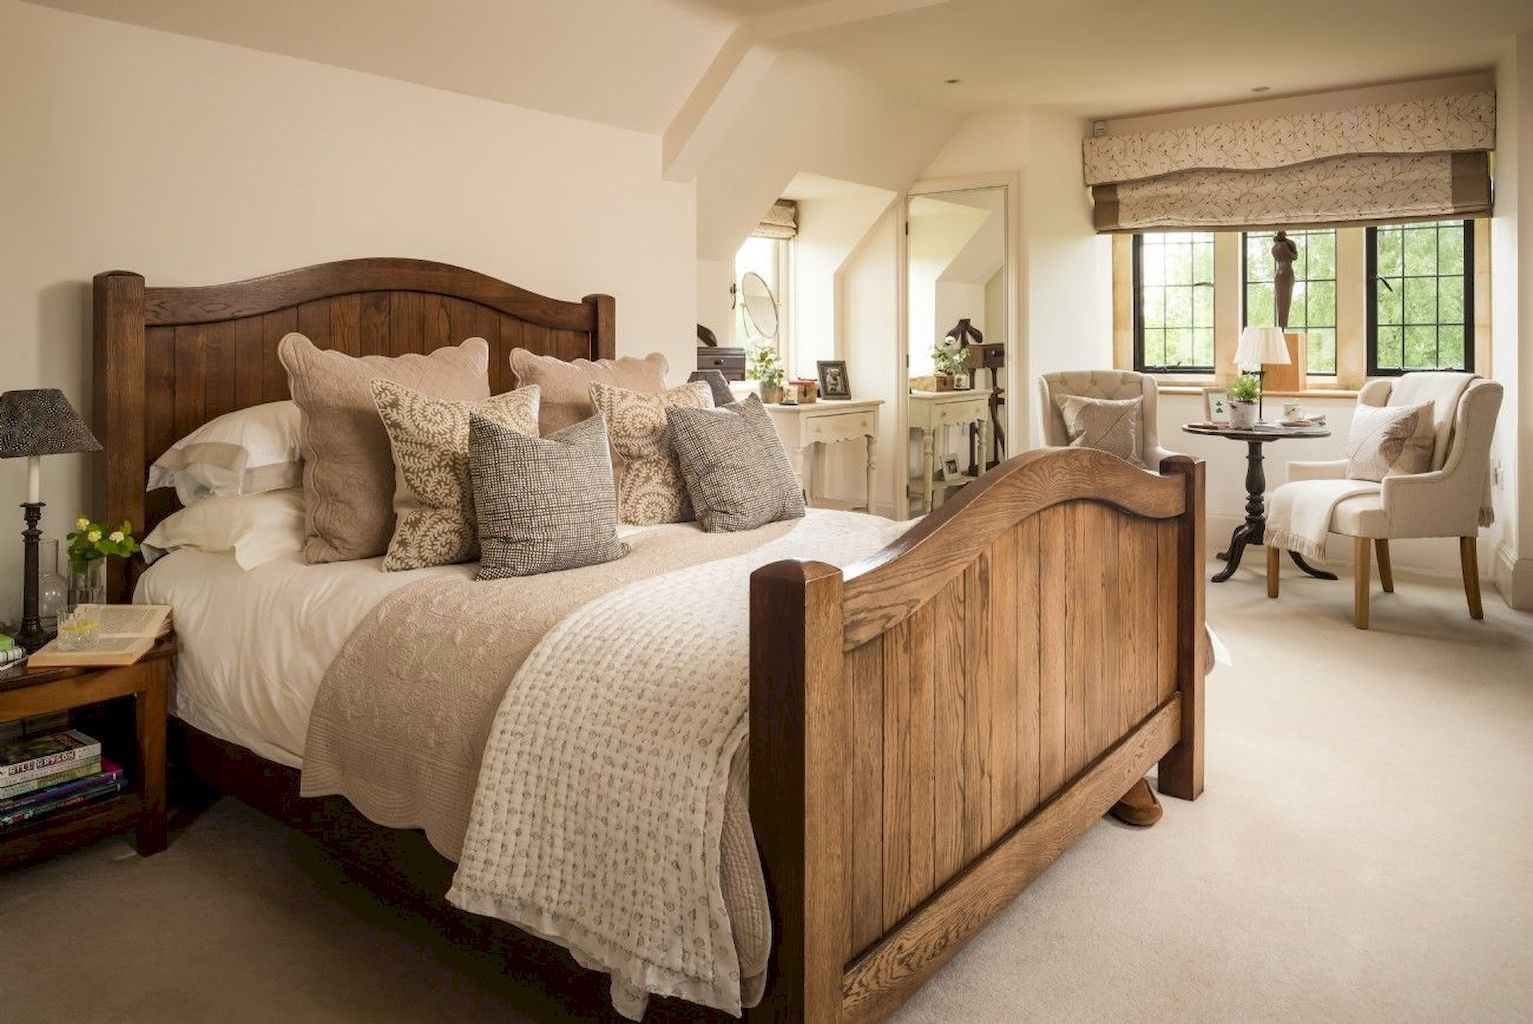 29 Rustic Master Bedroom Ideas  Country cottage bedroom, Rustic